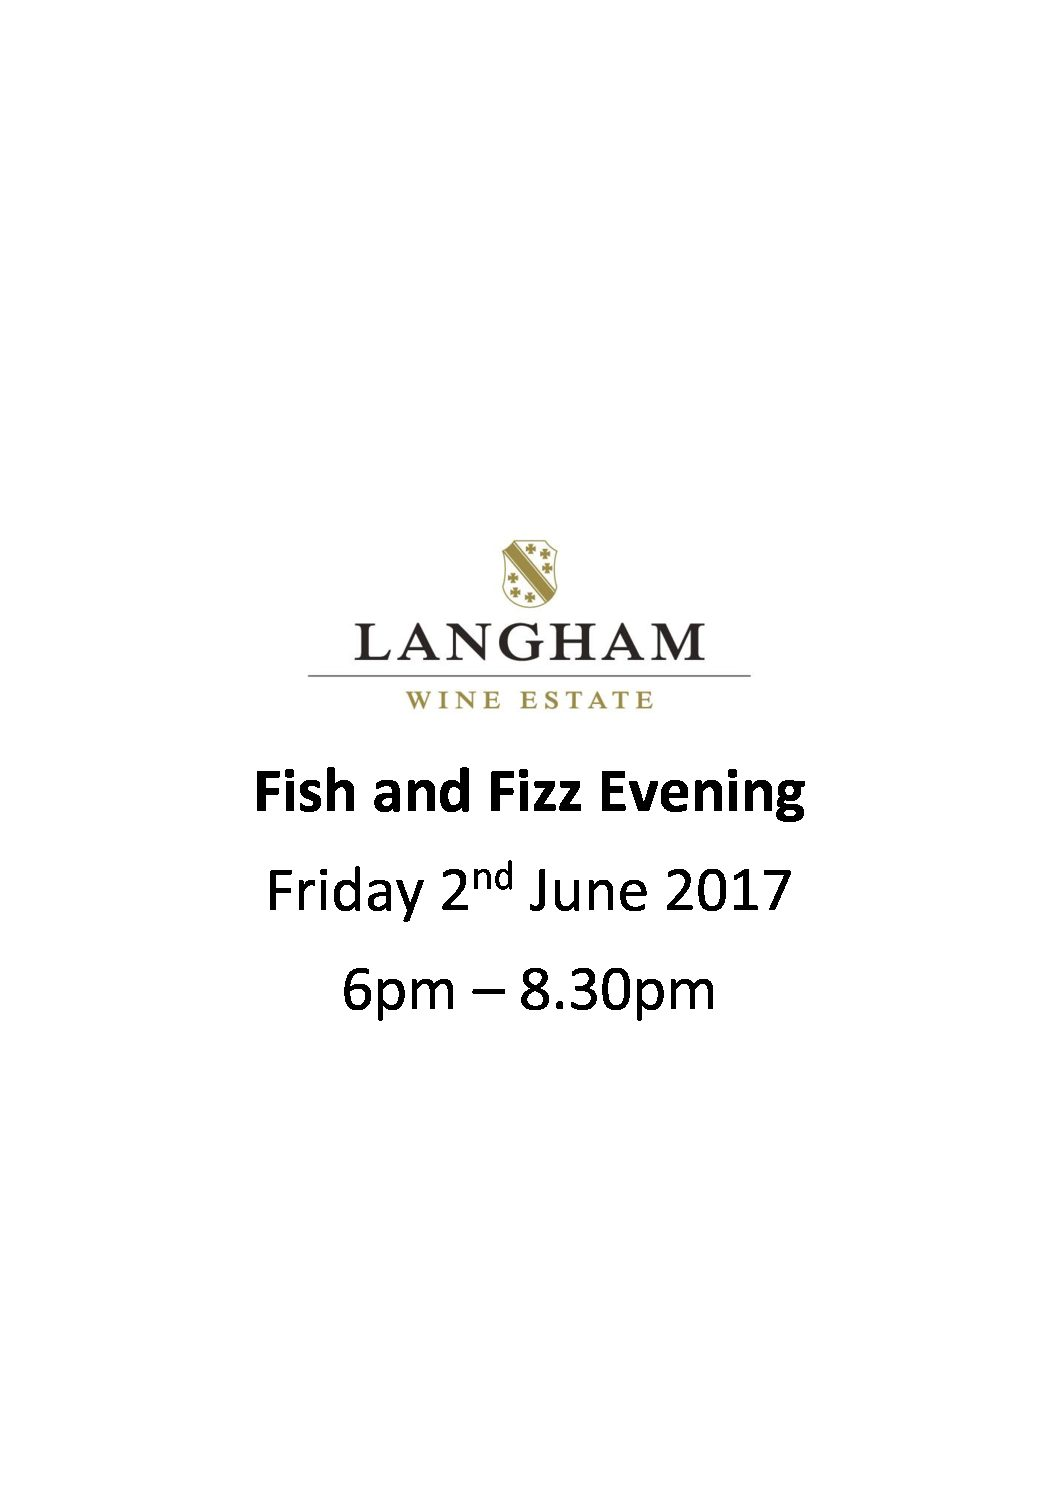 Fish and Fizz Evening